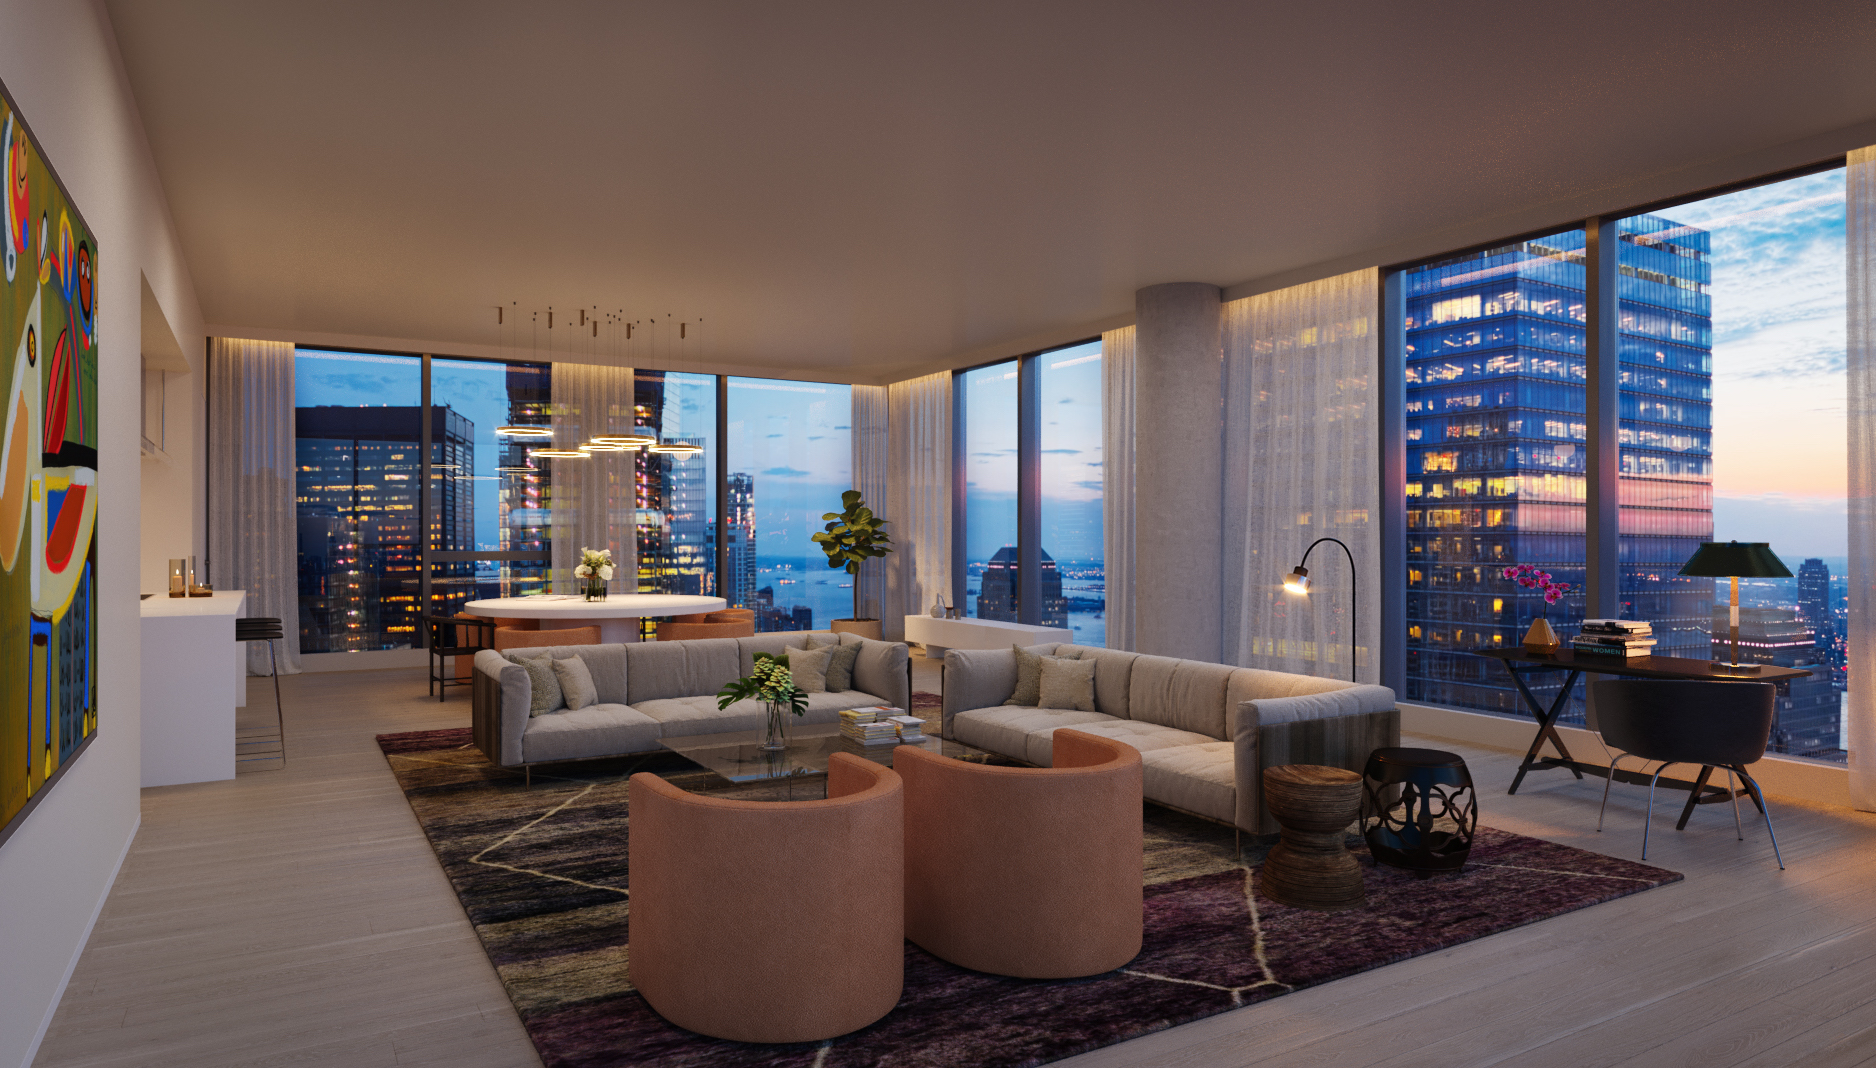 Condos At Financial Districts 45 Park Place Will Average 3400 Square Foot